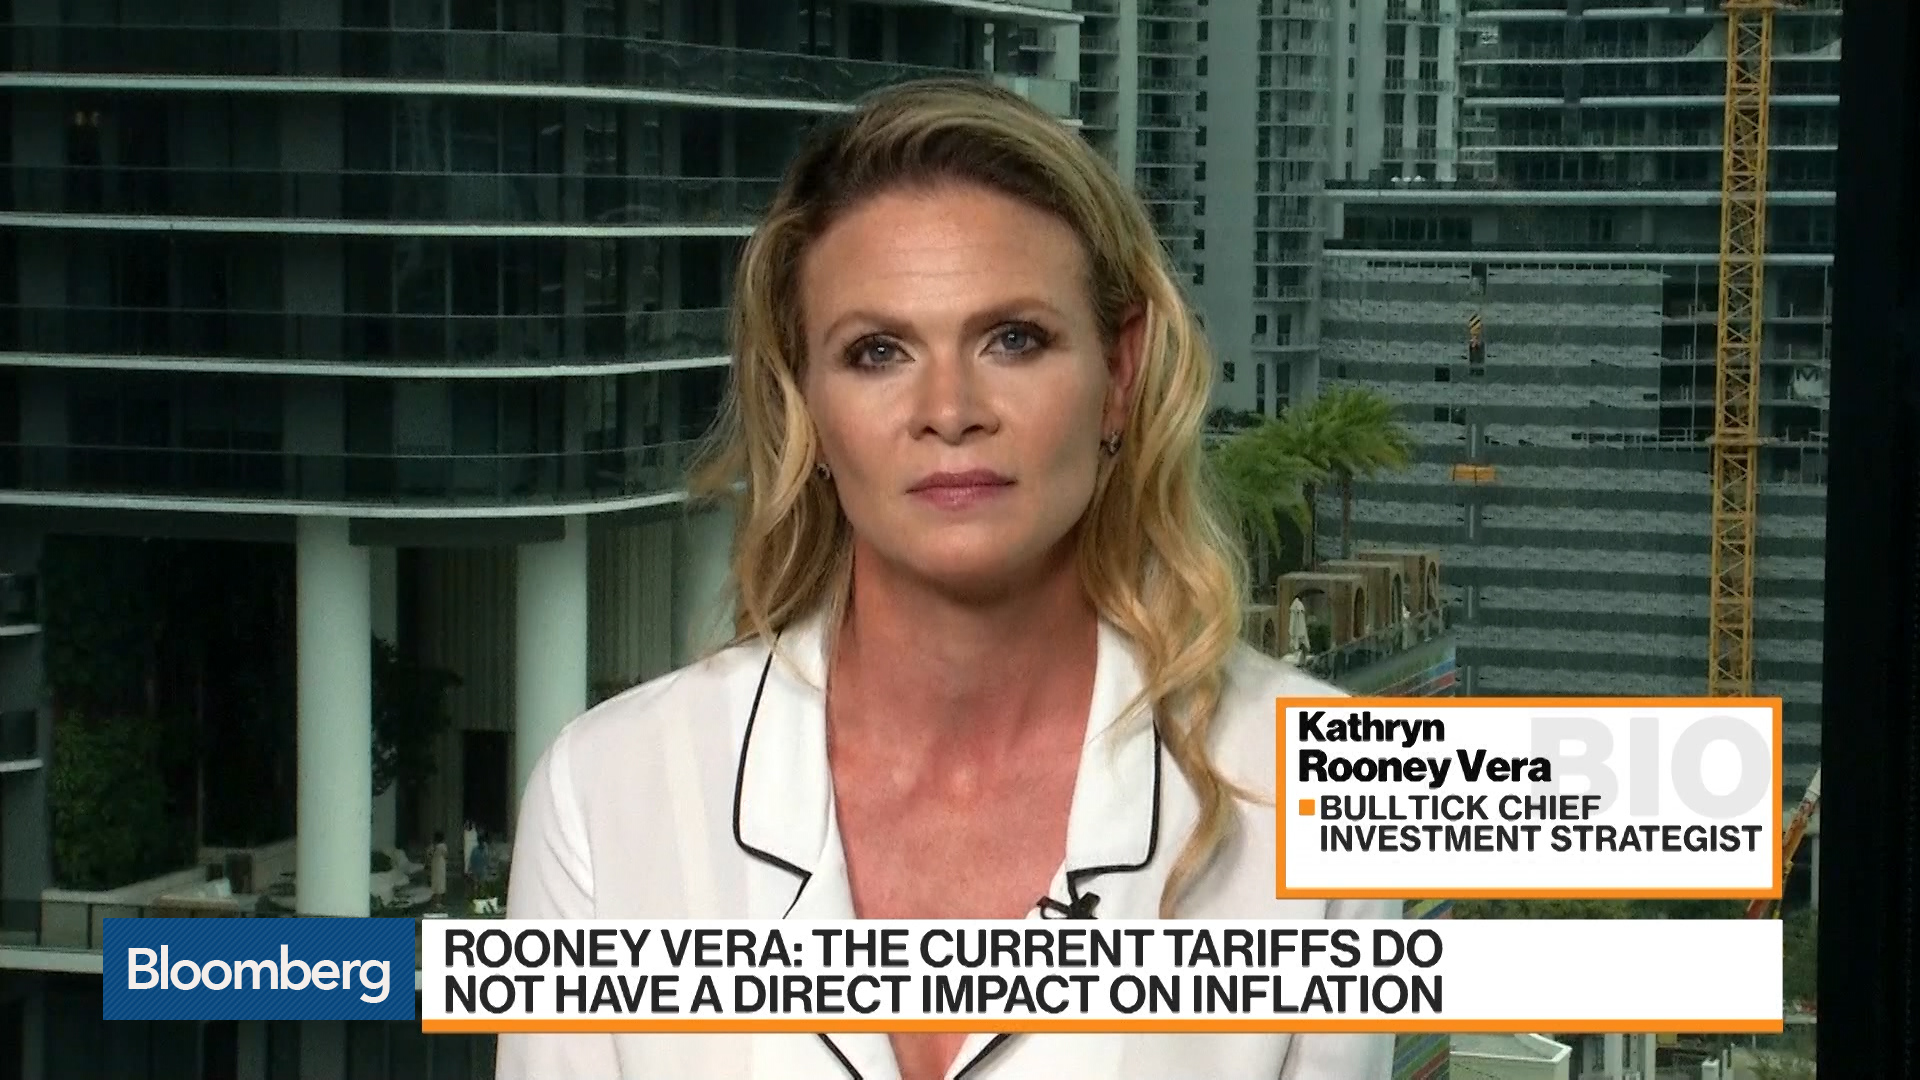 Now Is the Time to Go Long Chinese Equities, Bulltick's Rooney Vera Says